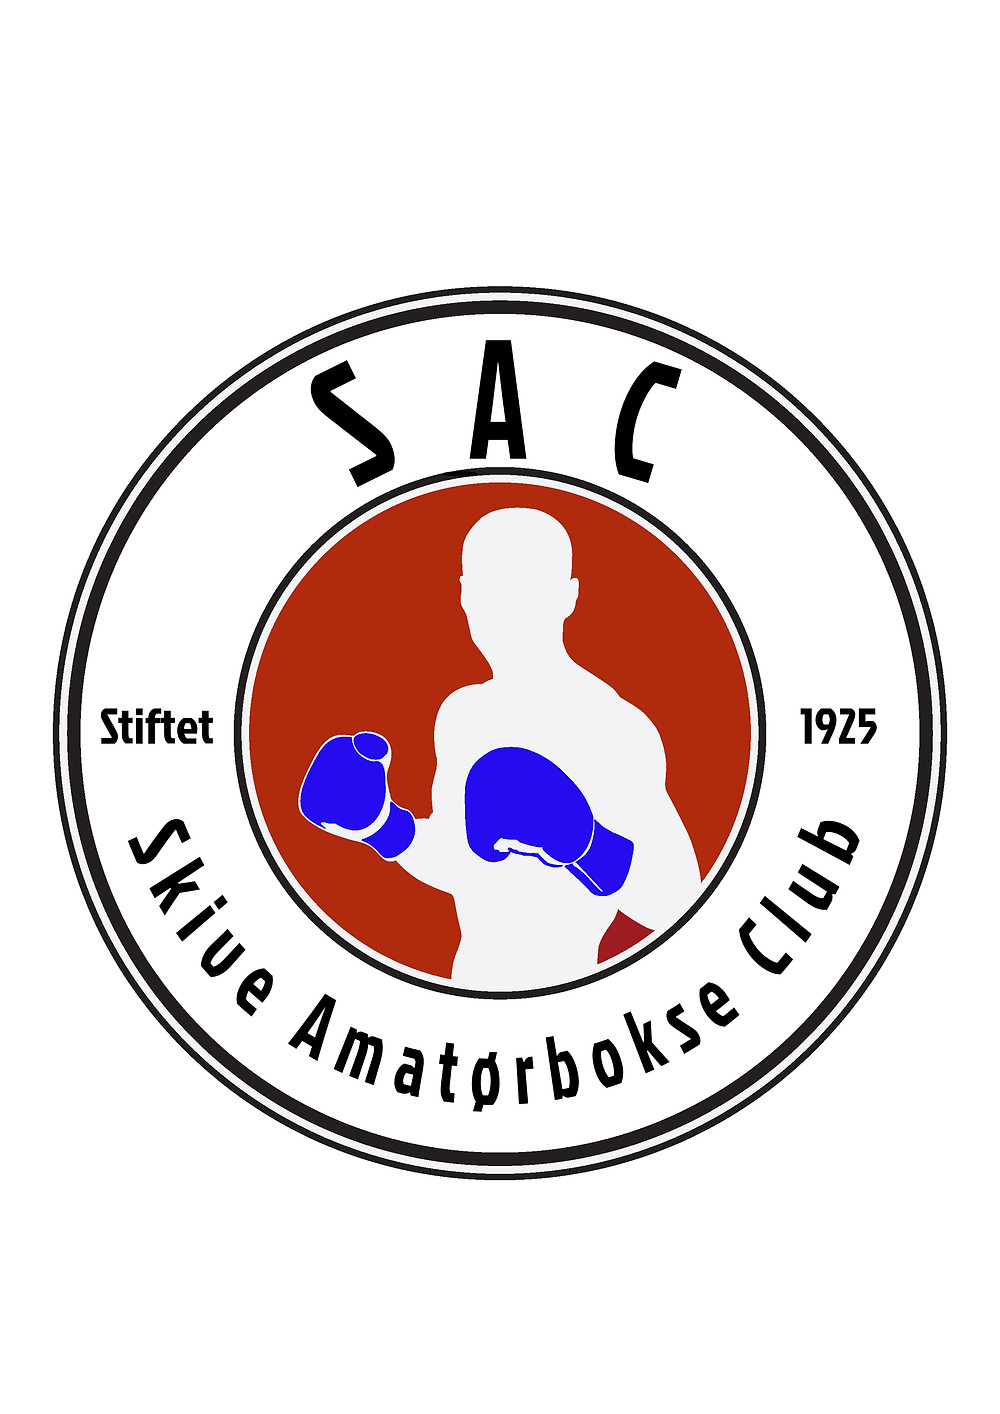 Skive Amatørbokse Club